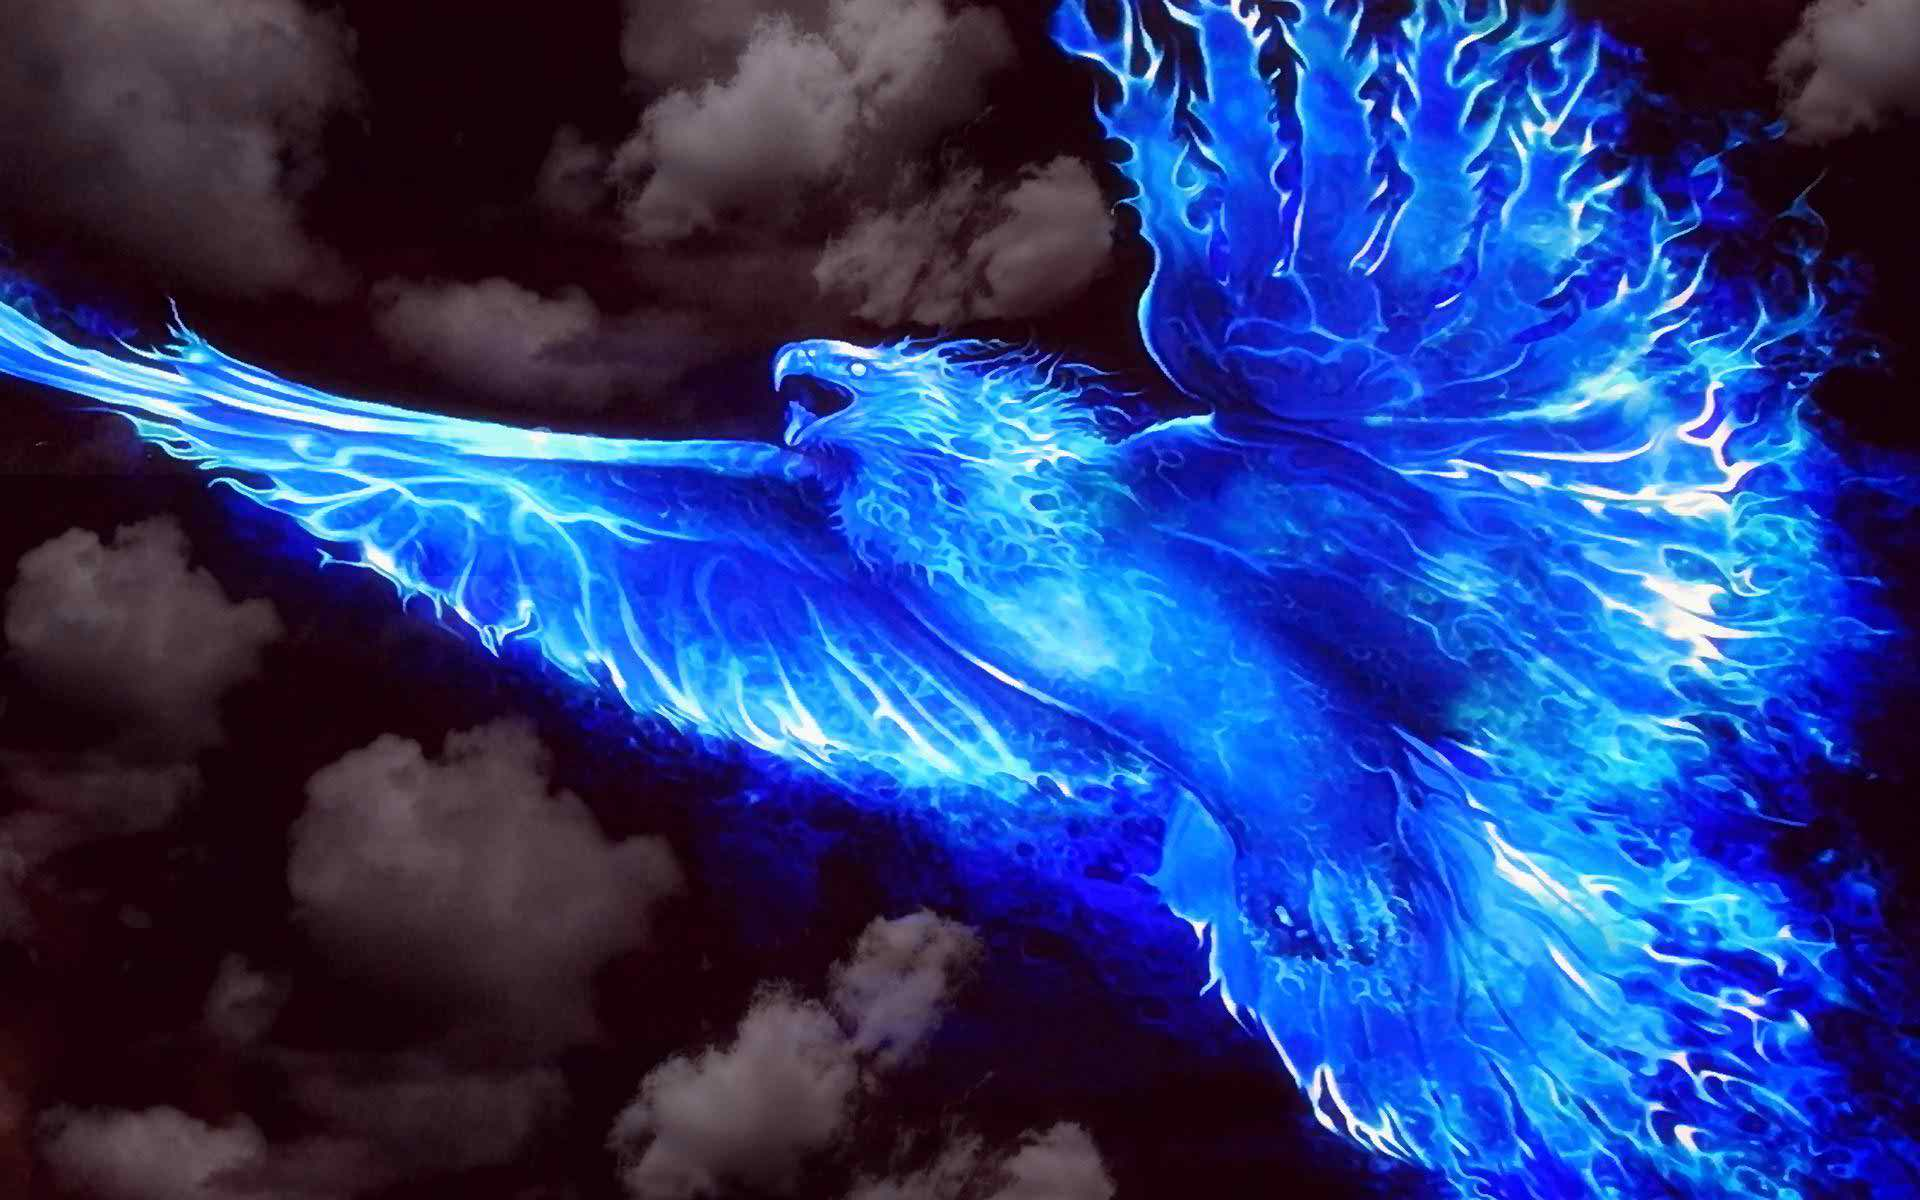 Cool backgrounds of blue fire